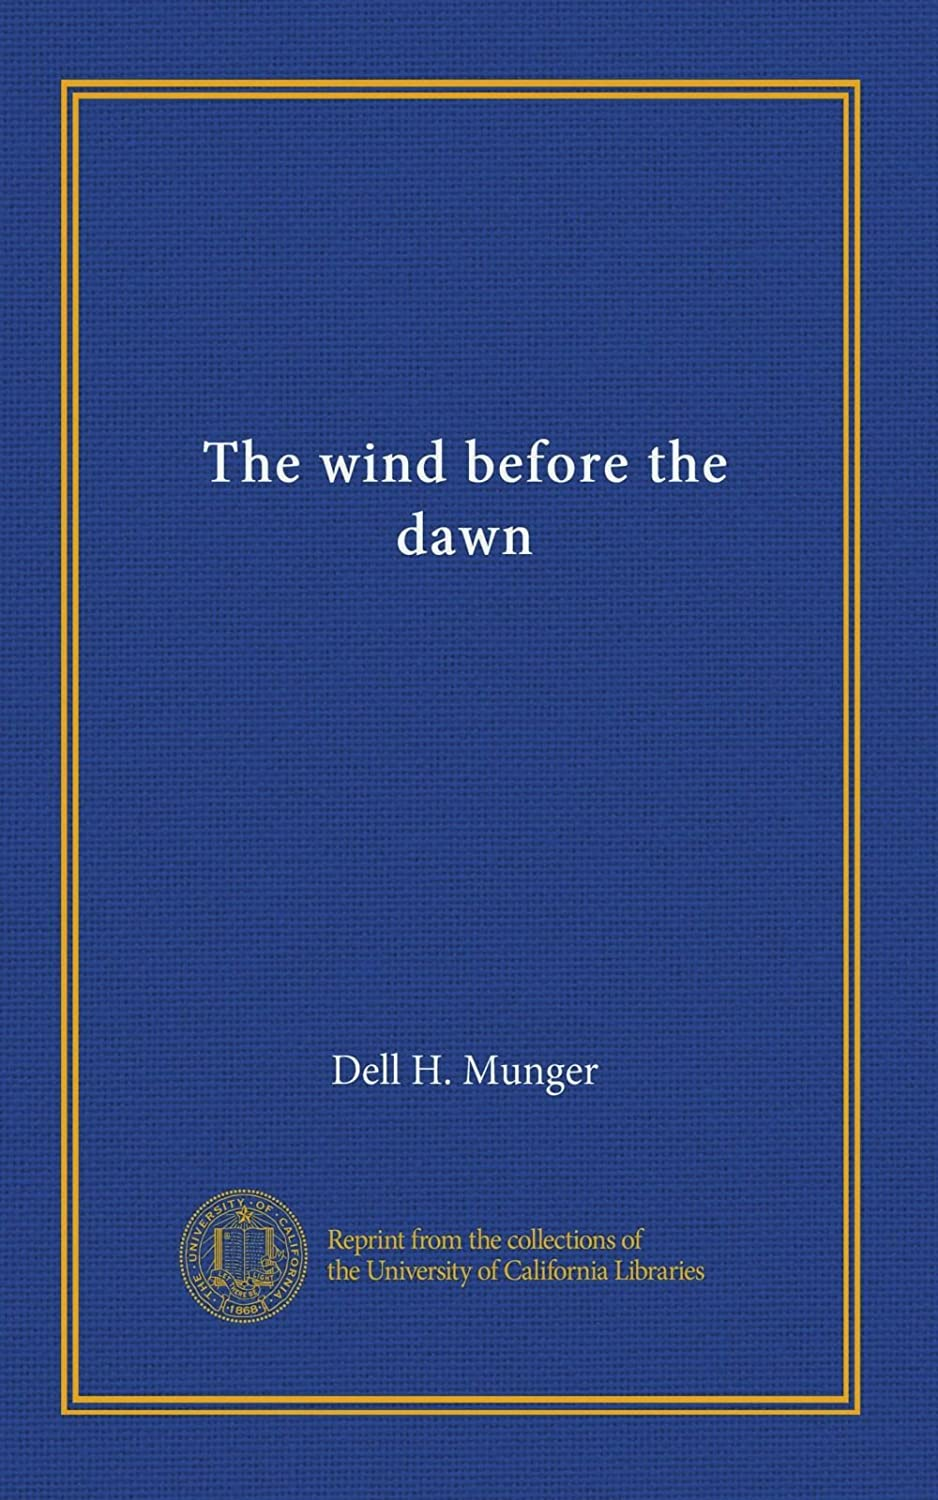 The wind before the dawn